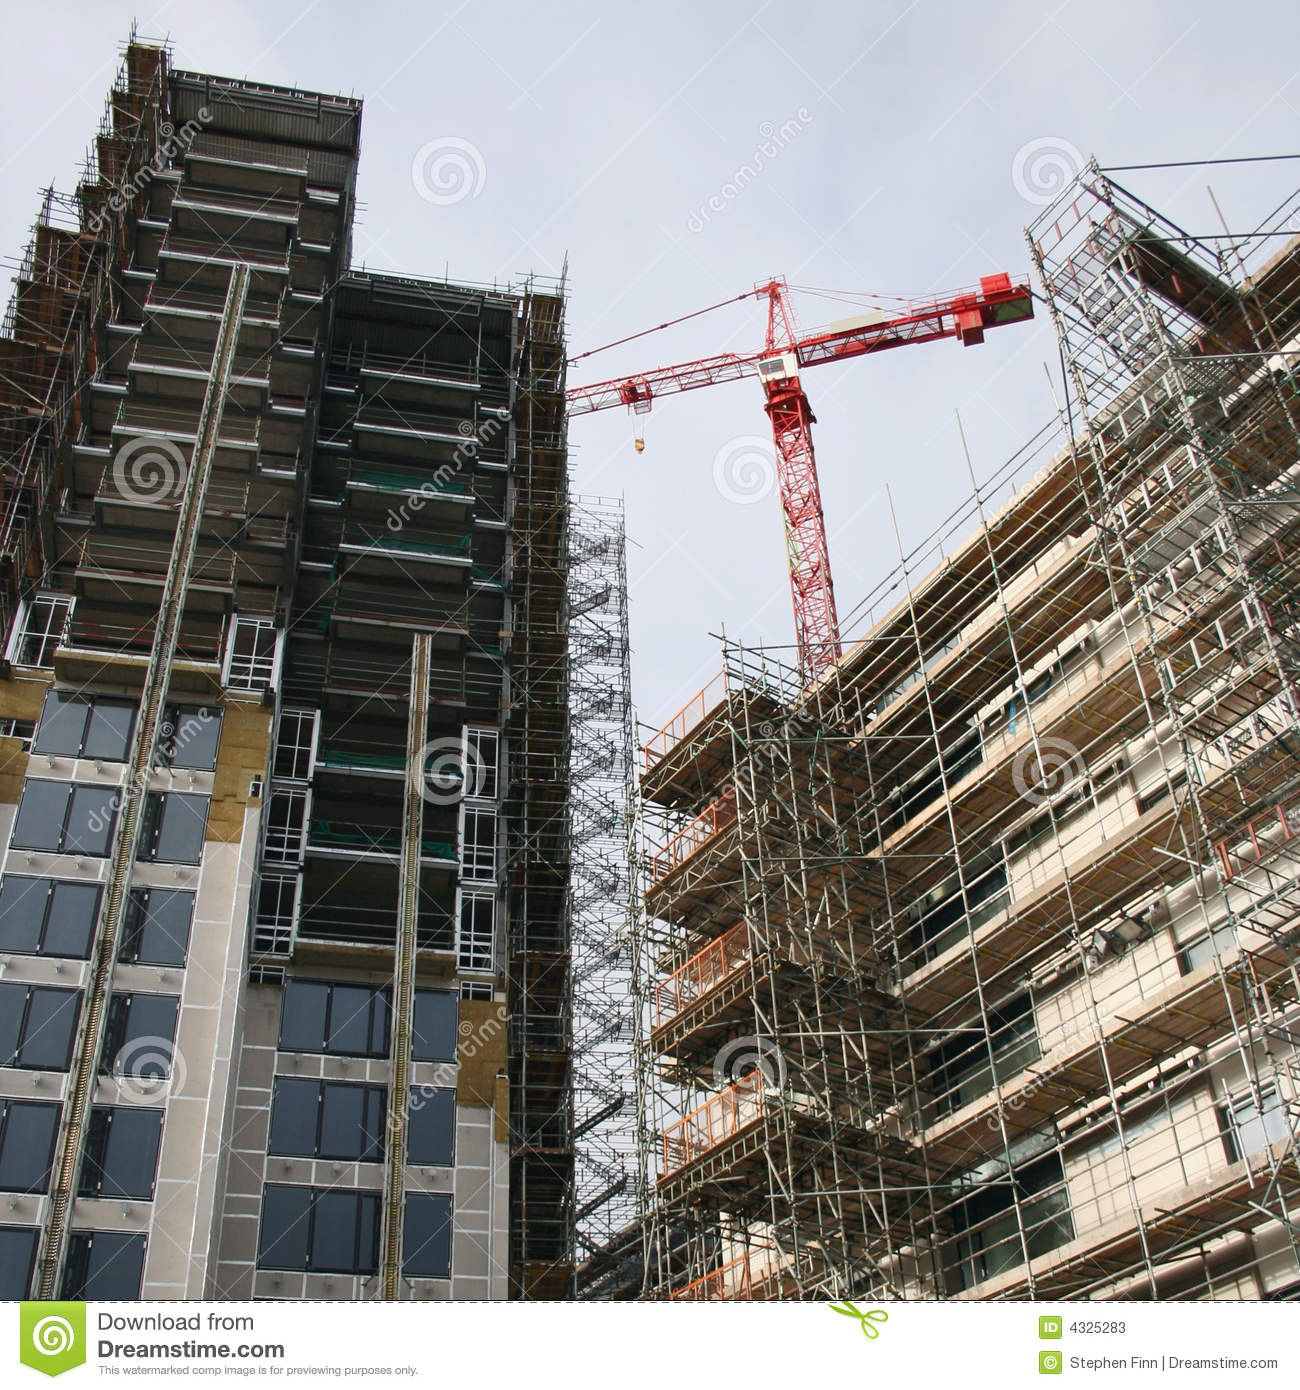 Chantier de construction de gratte ciel photos stock image 4325283 - Construction gratte ciel ...